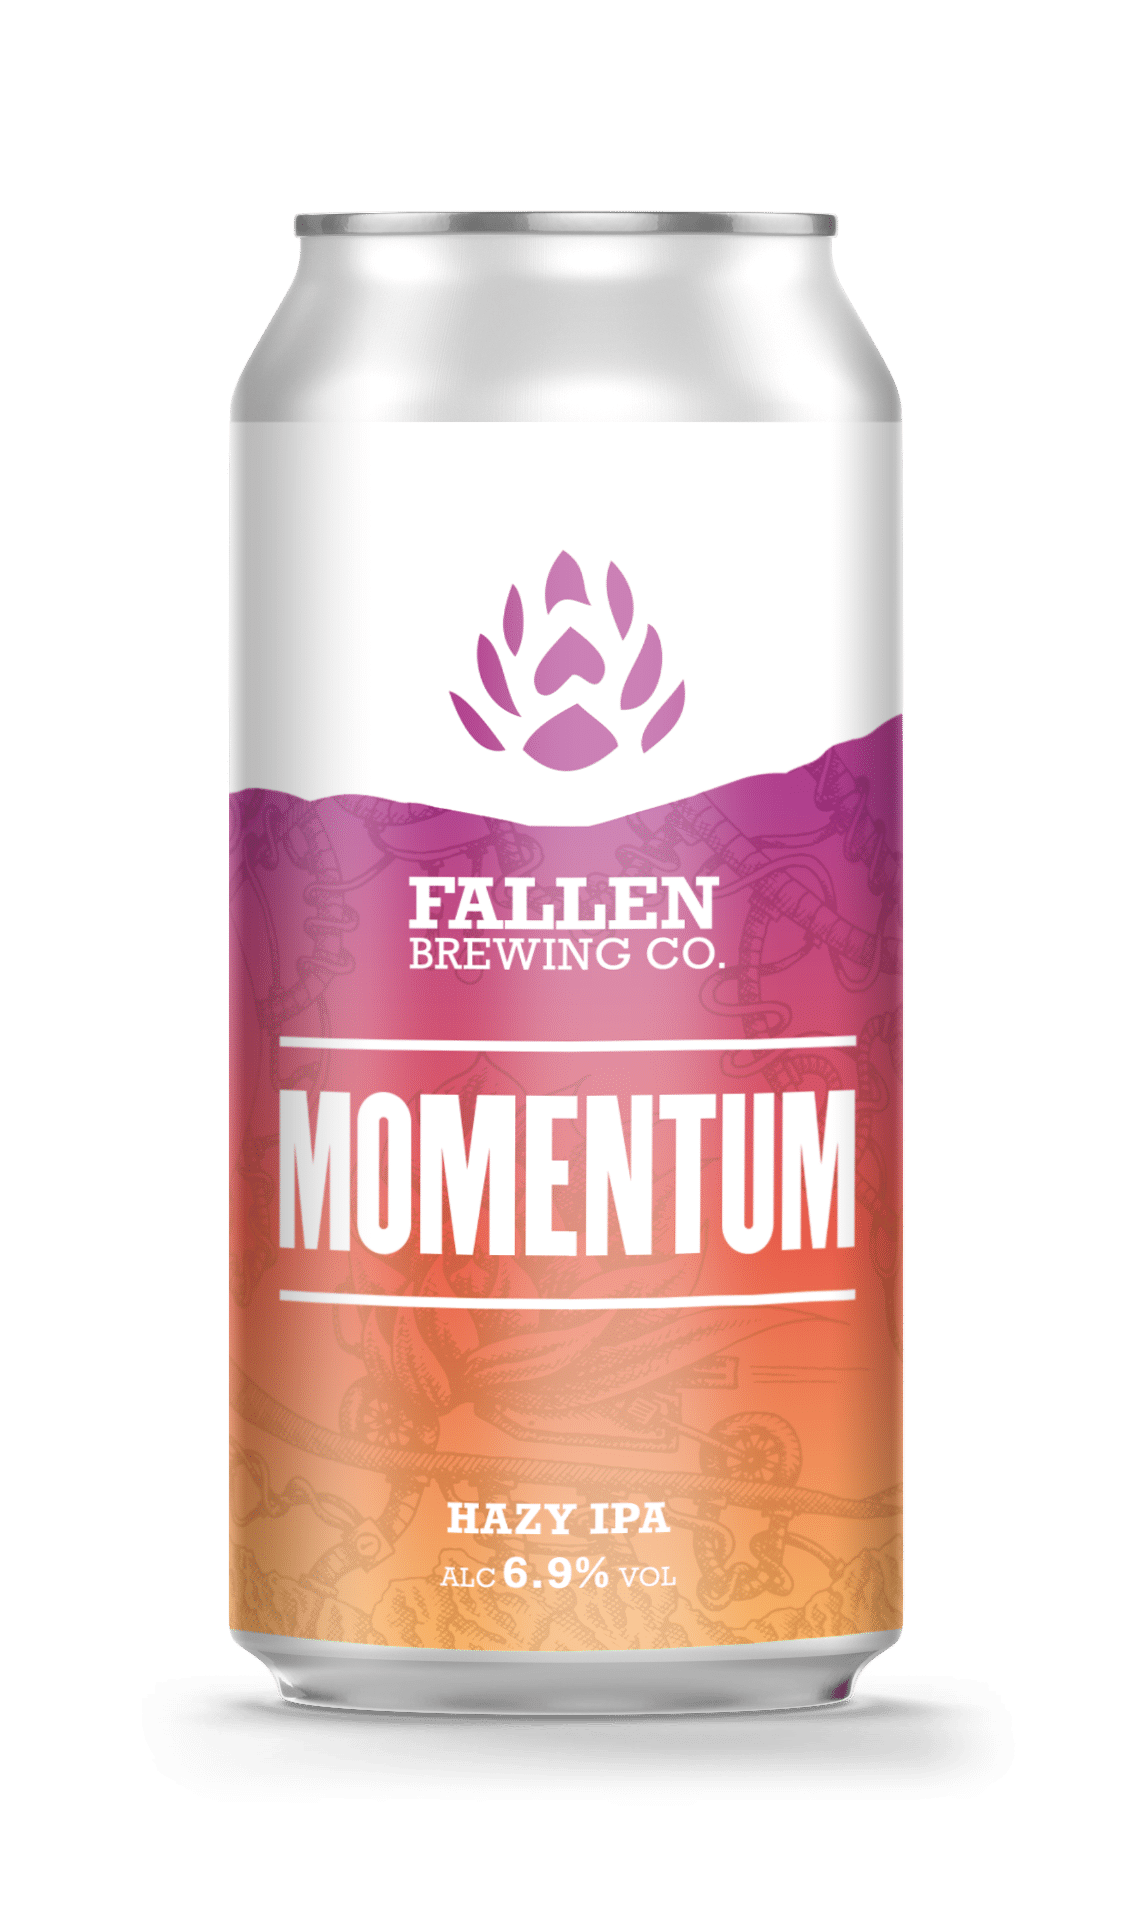 A Can of Momentum Hazy IPA from Fallen Brewing